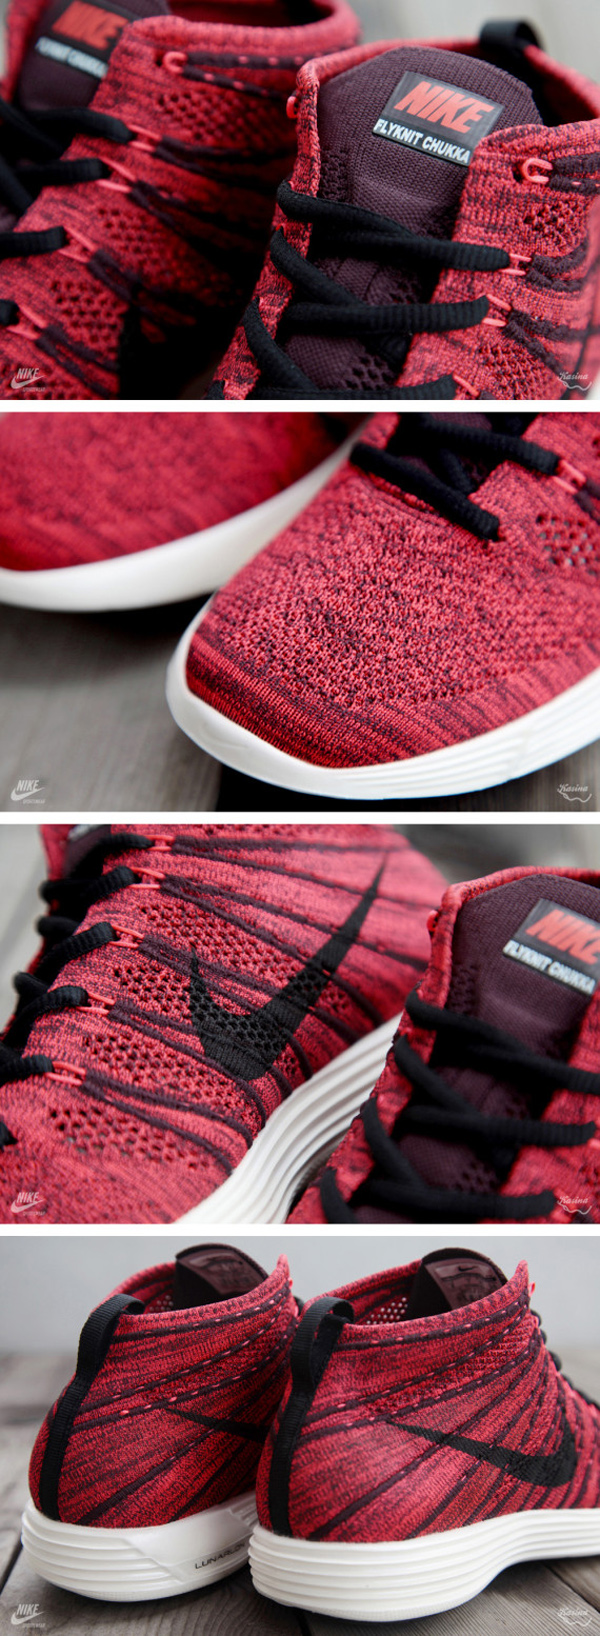 nike-flyknit-chukka-fall-2013-collection-06